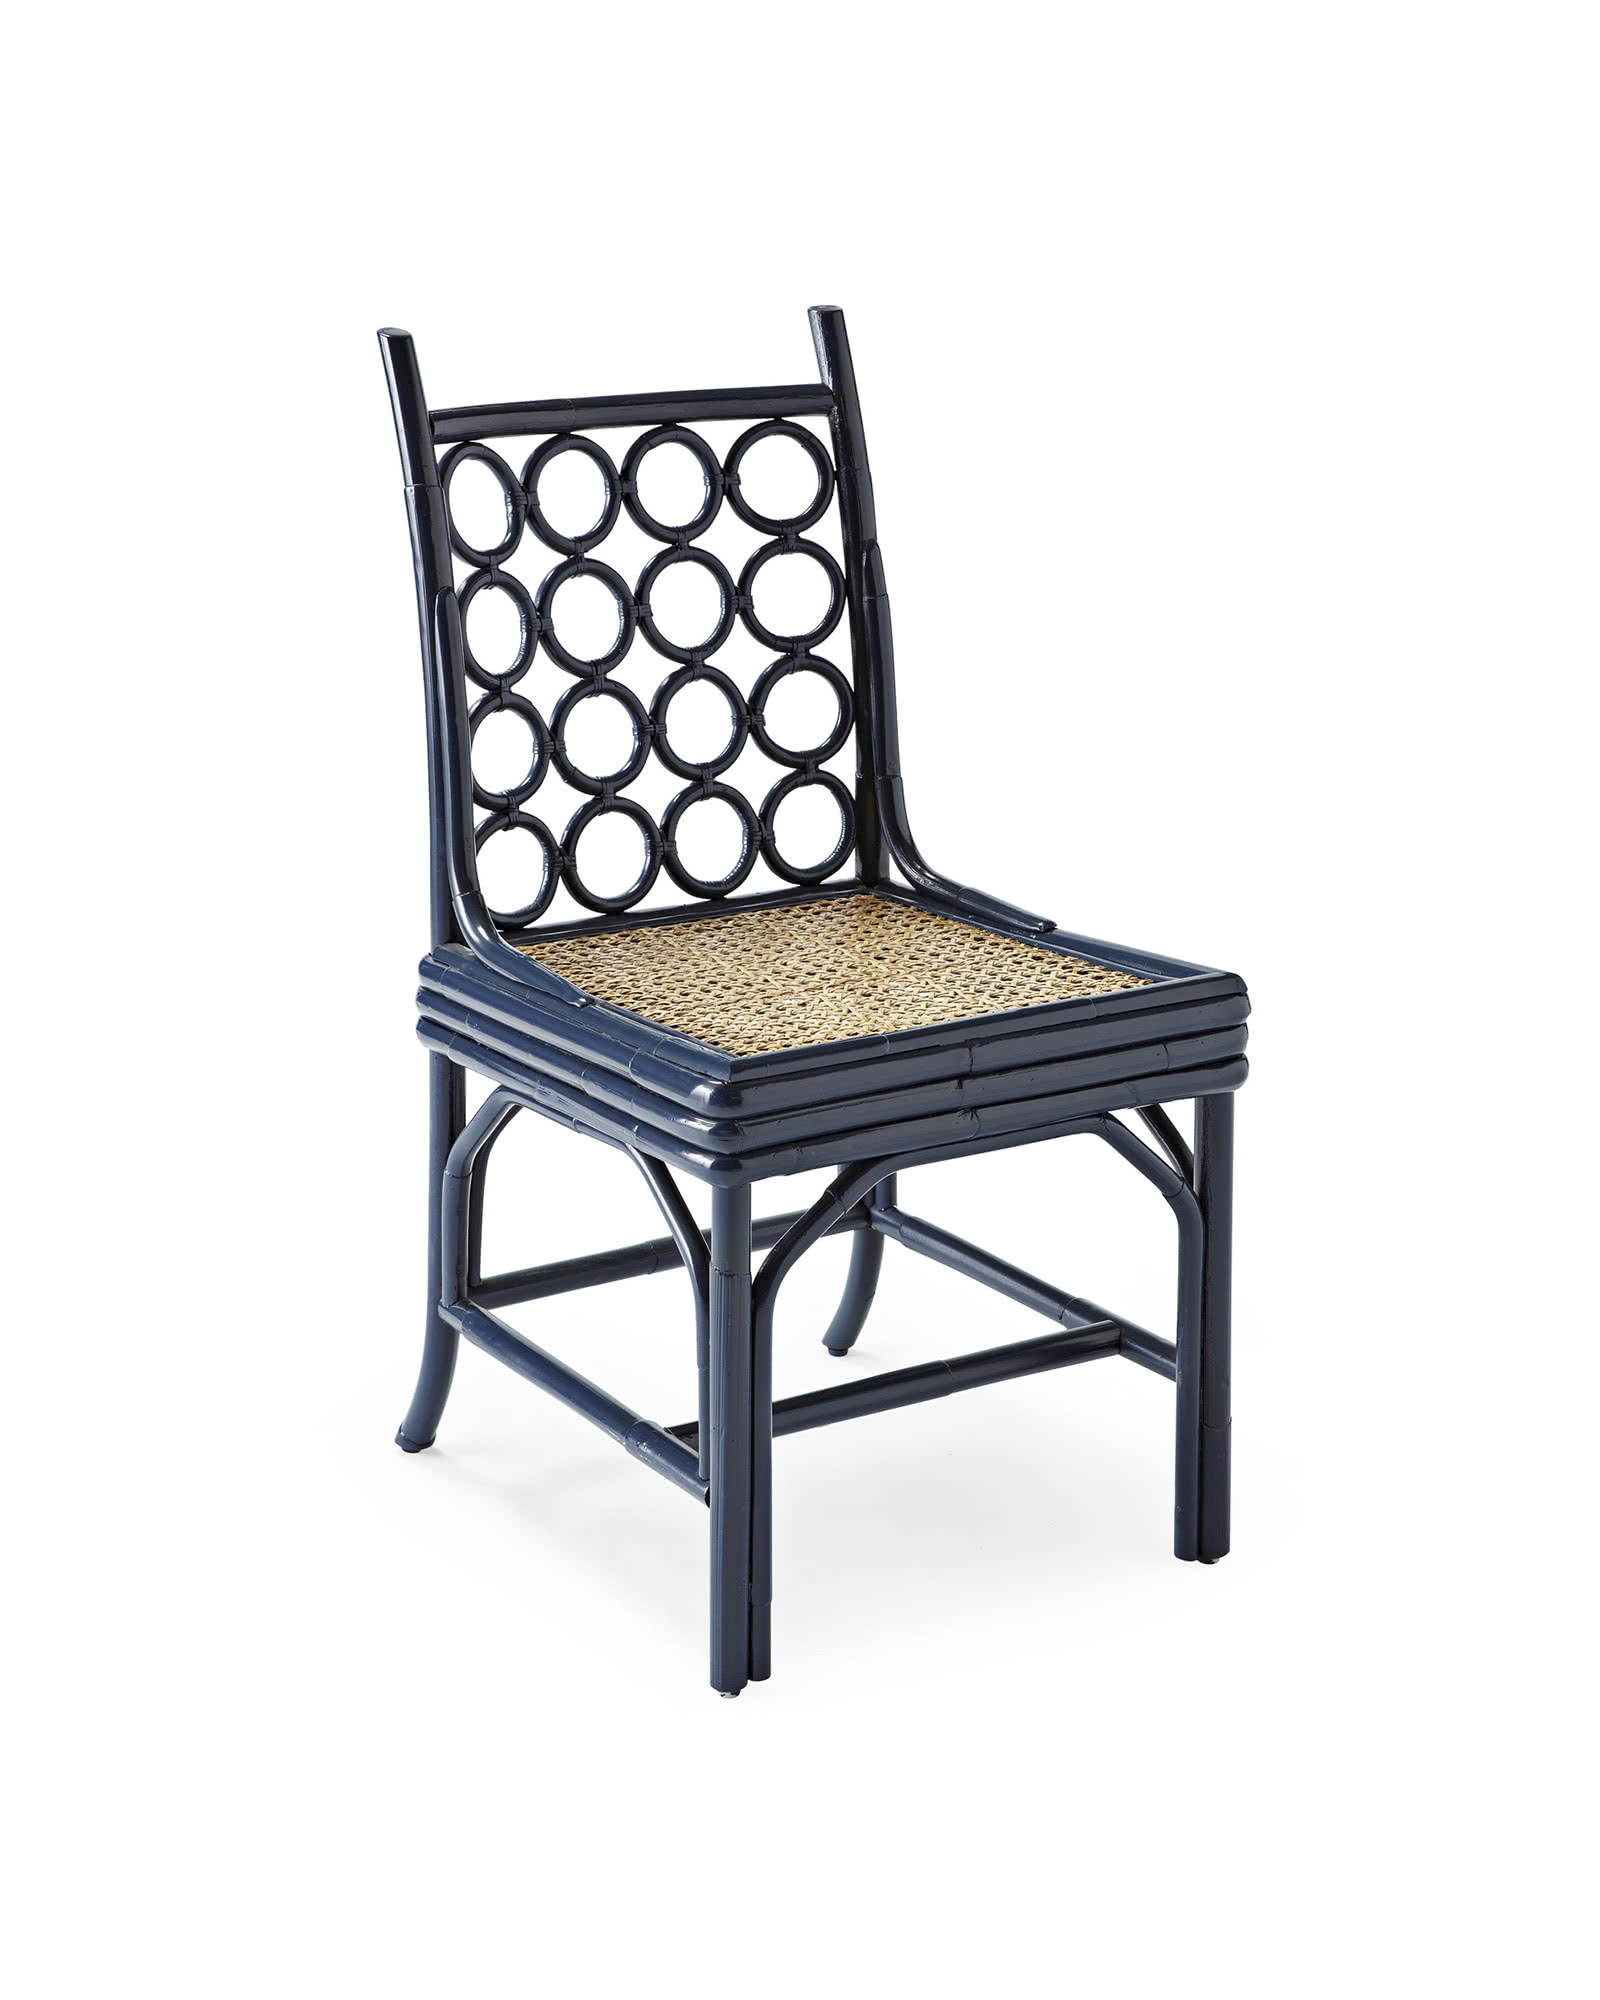 Larchmont Dining Chair Navy Serena & Lily